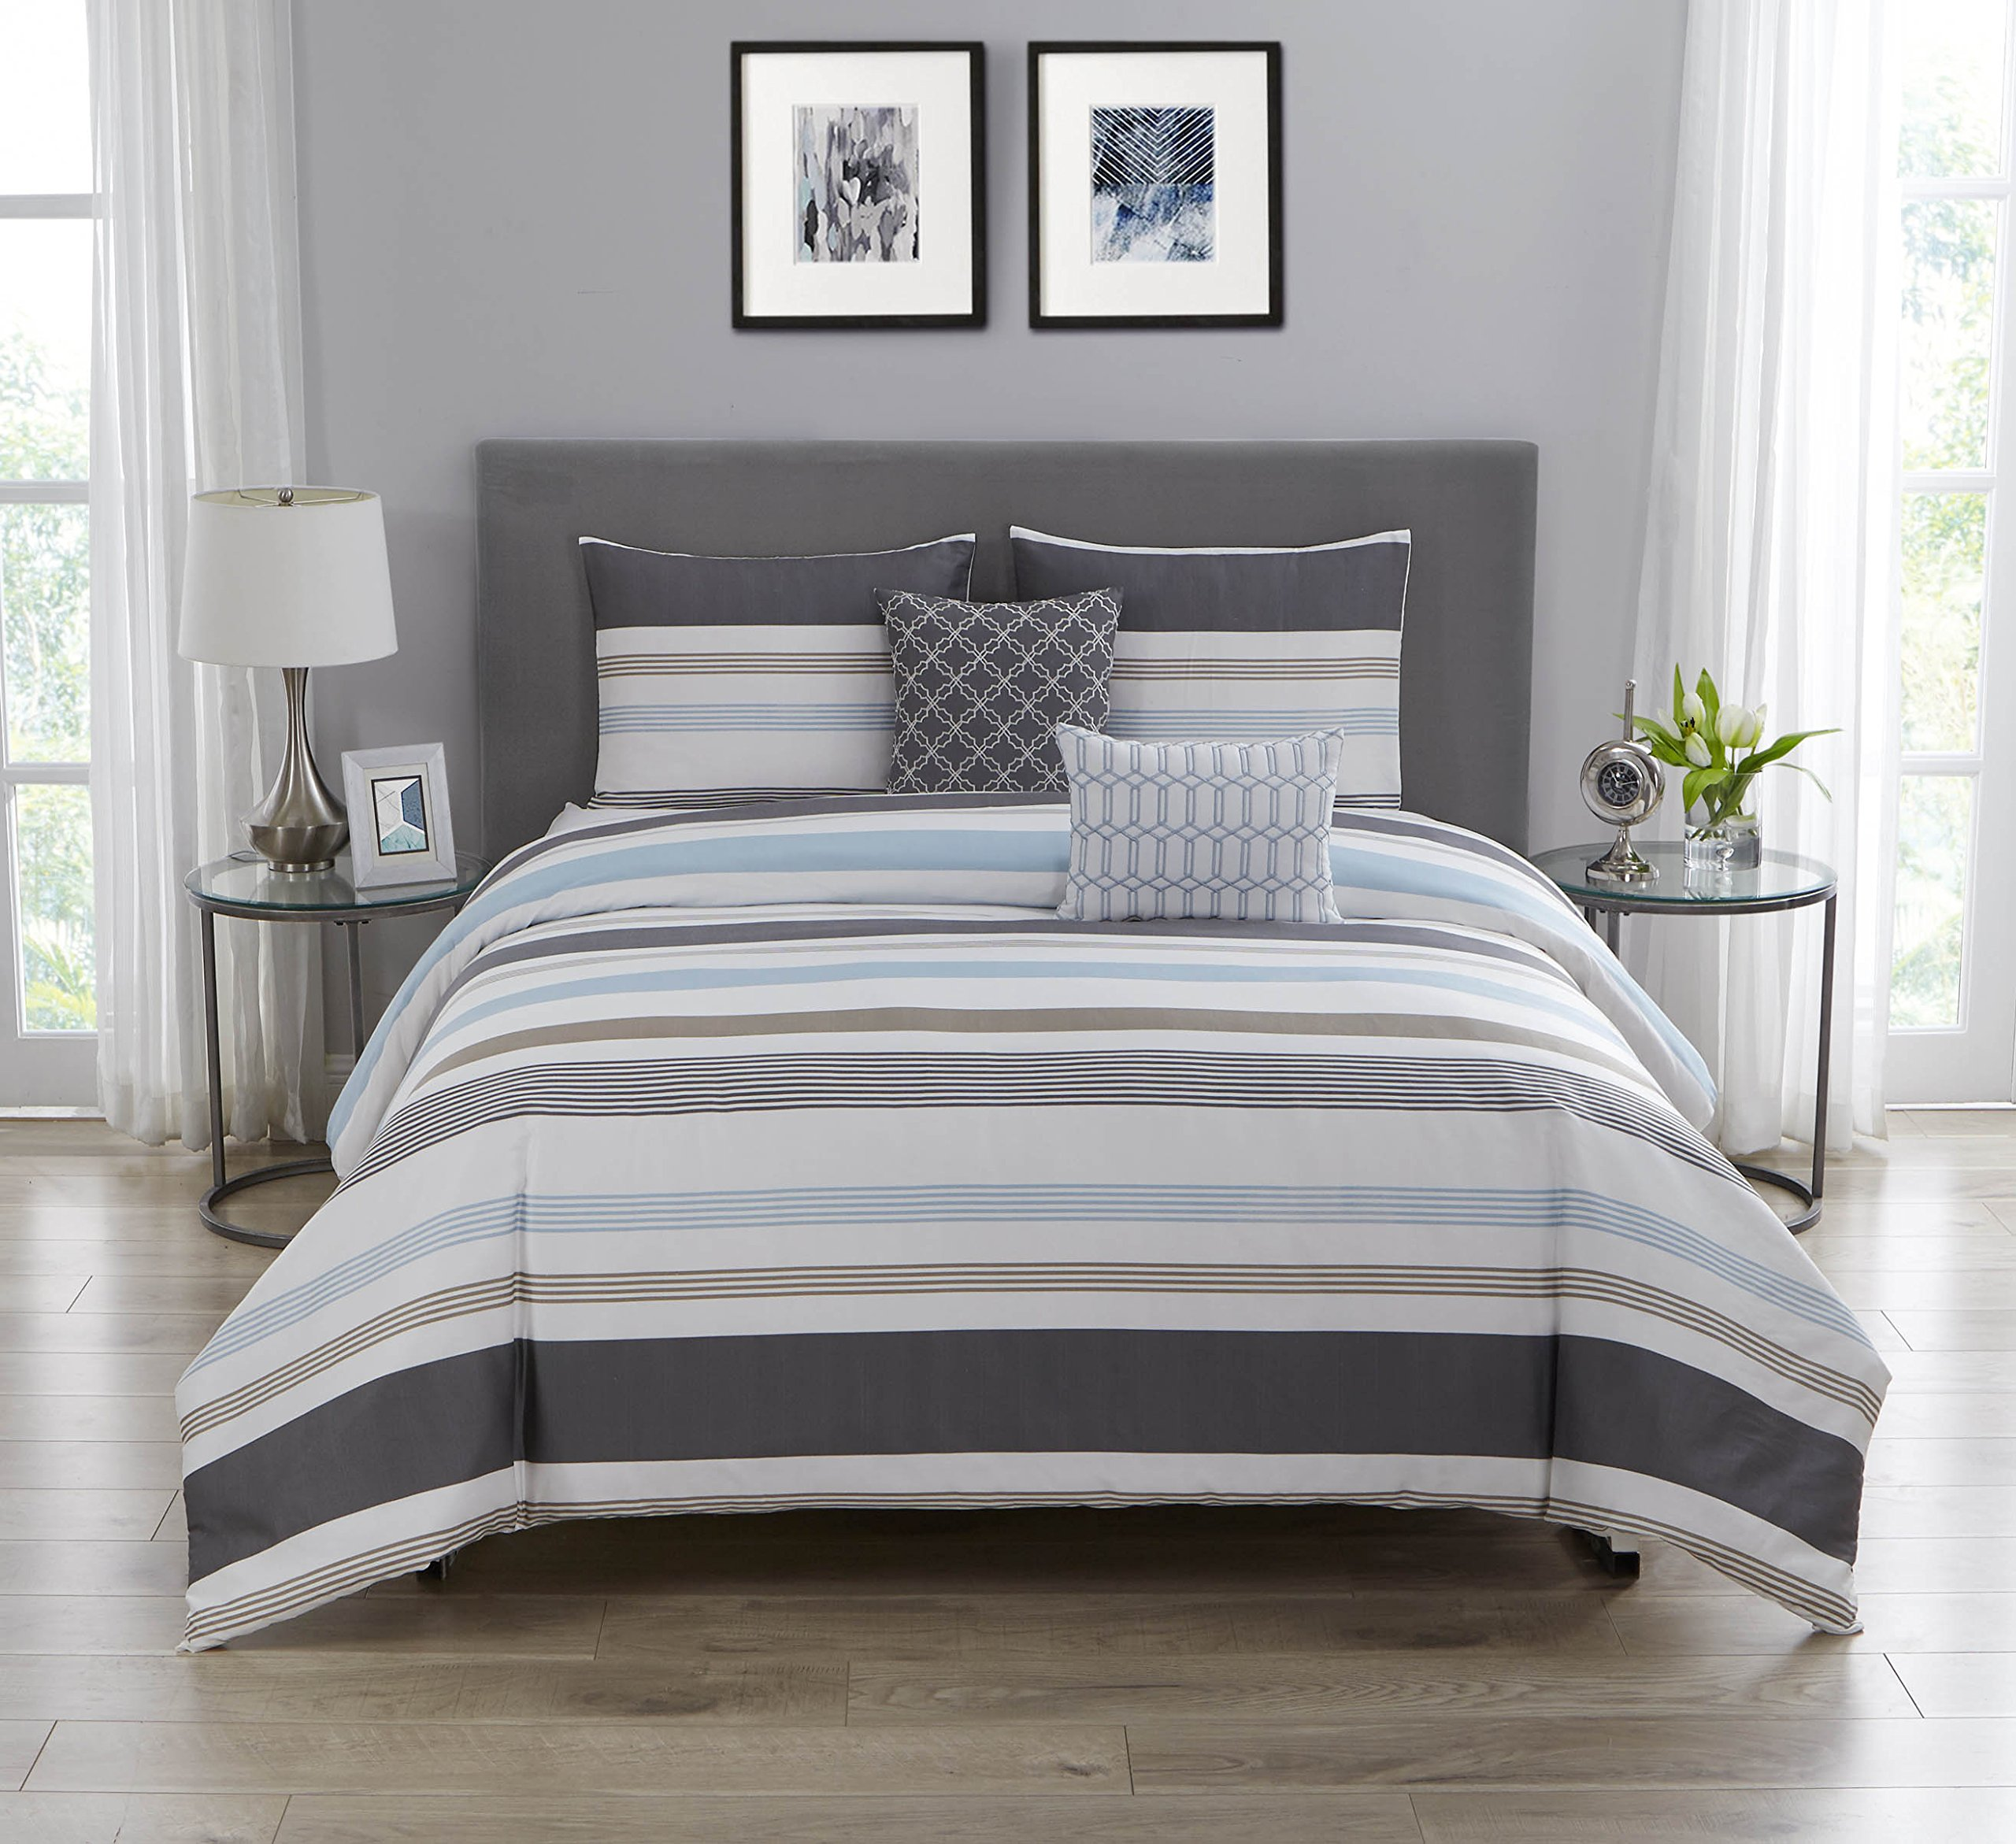 Chic home bedding